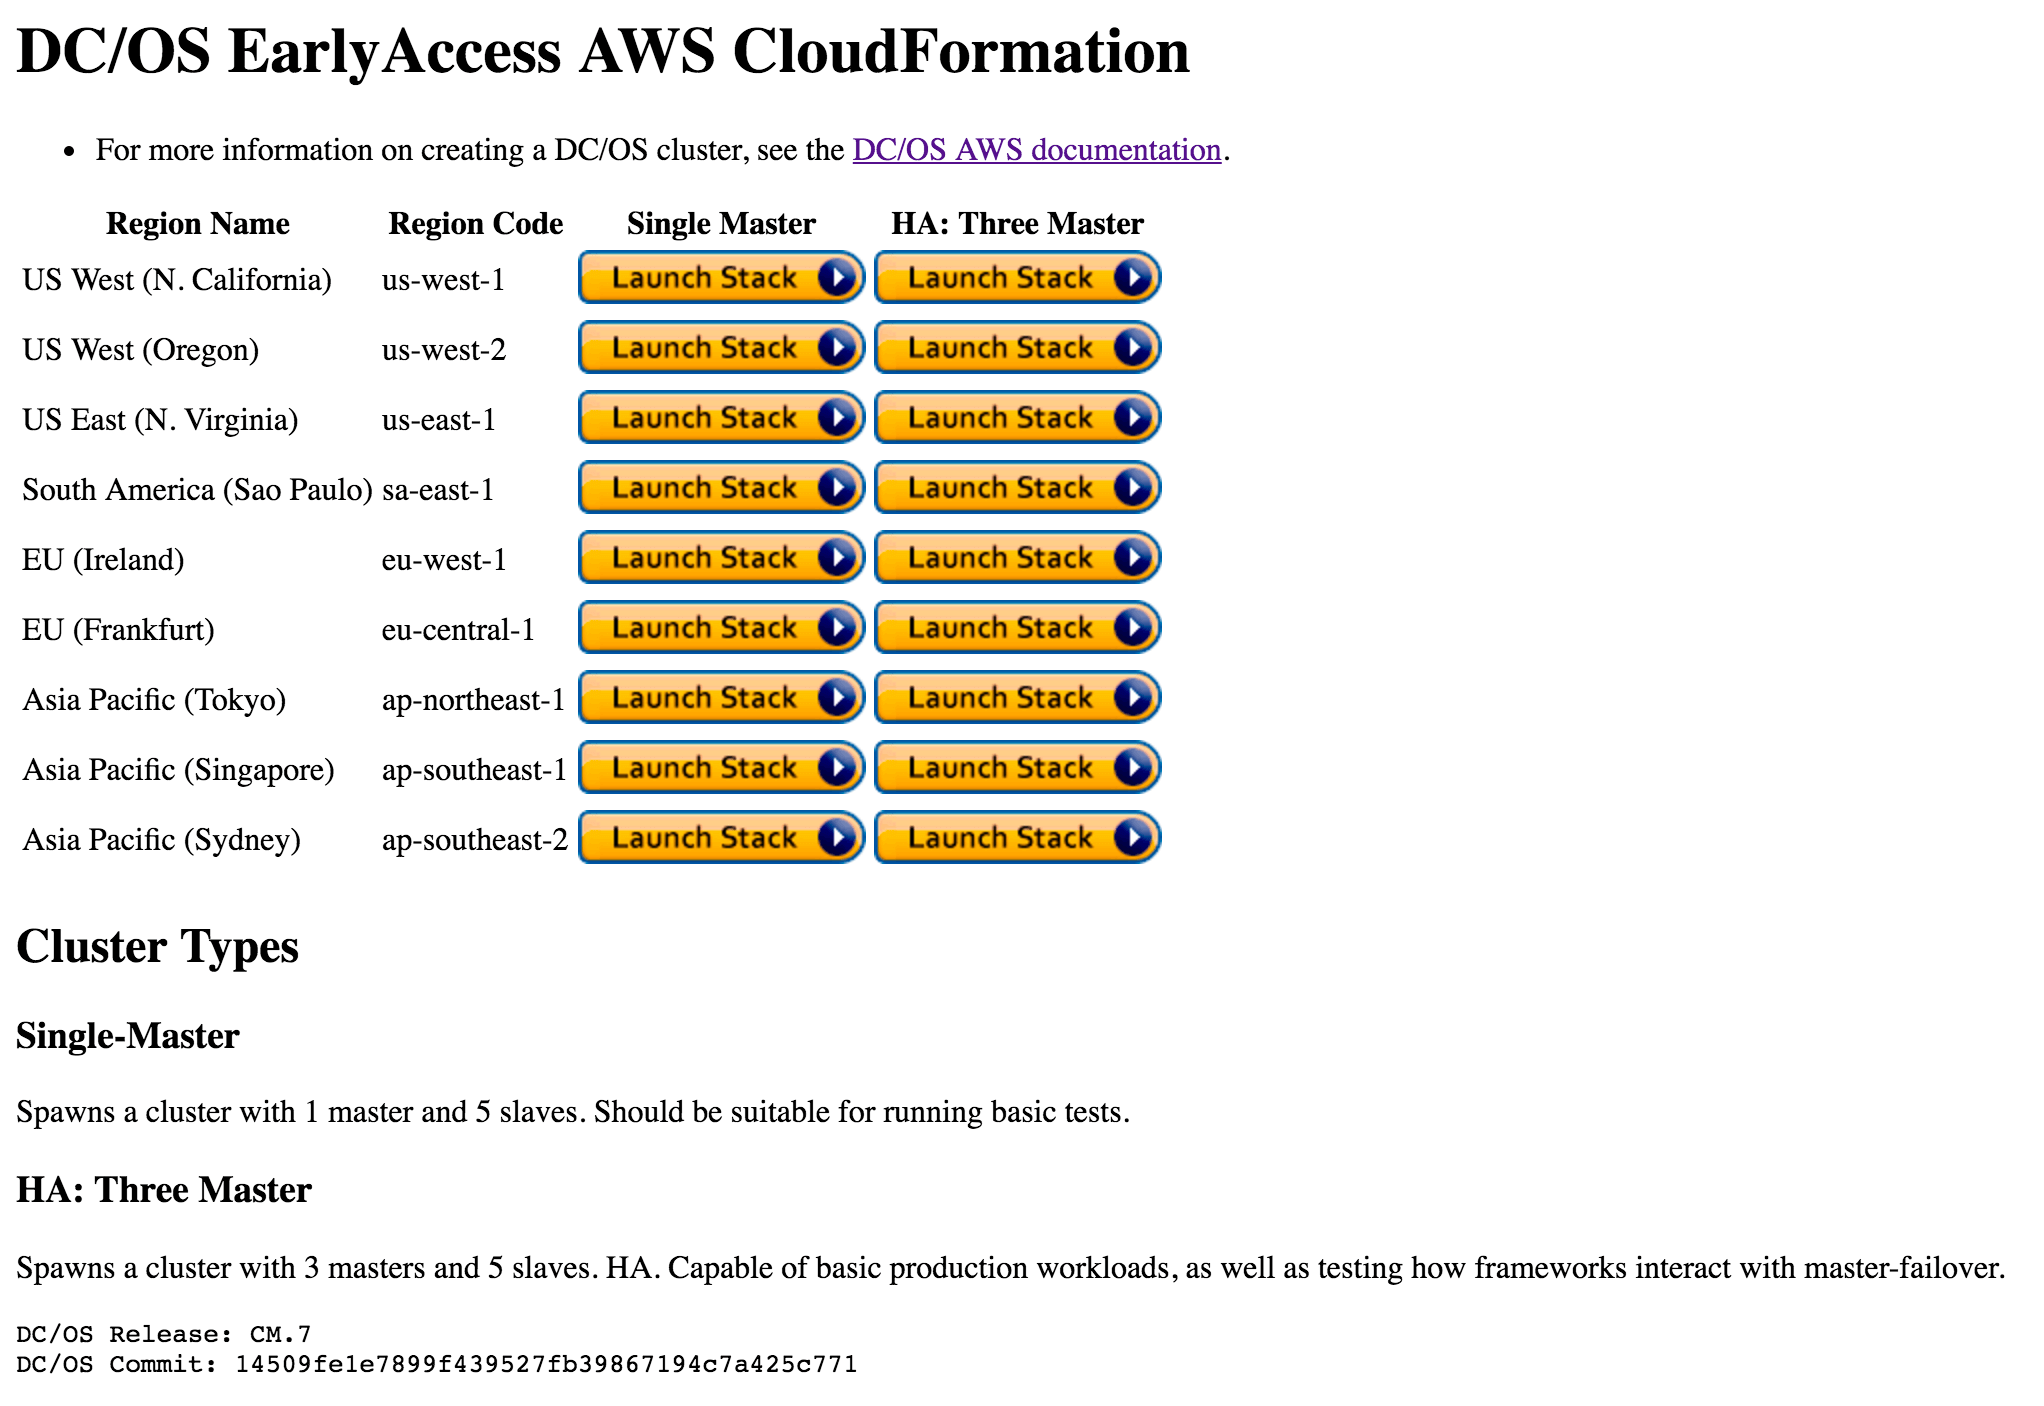 DC/OS Early Access AWS Cloud Formation Template